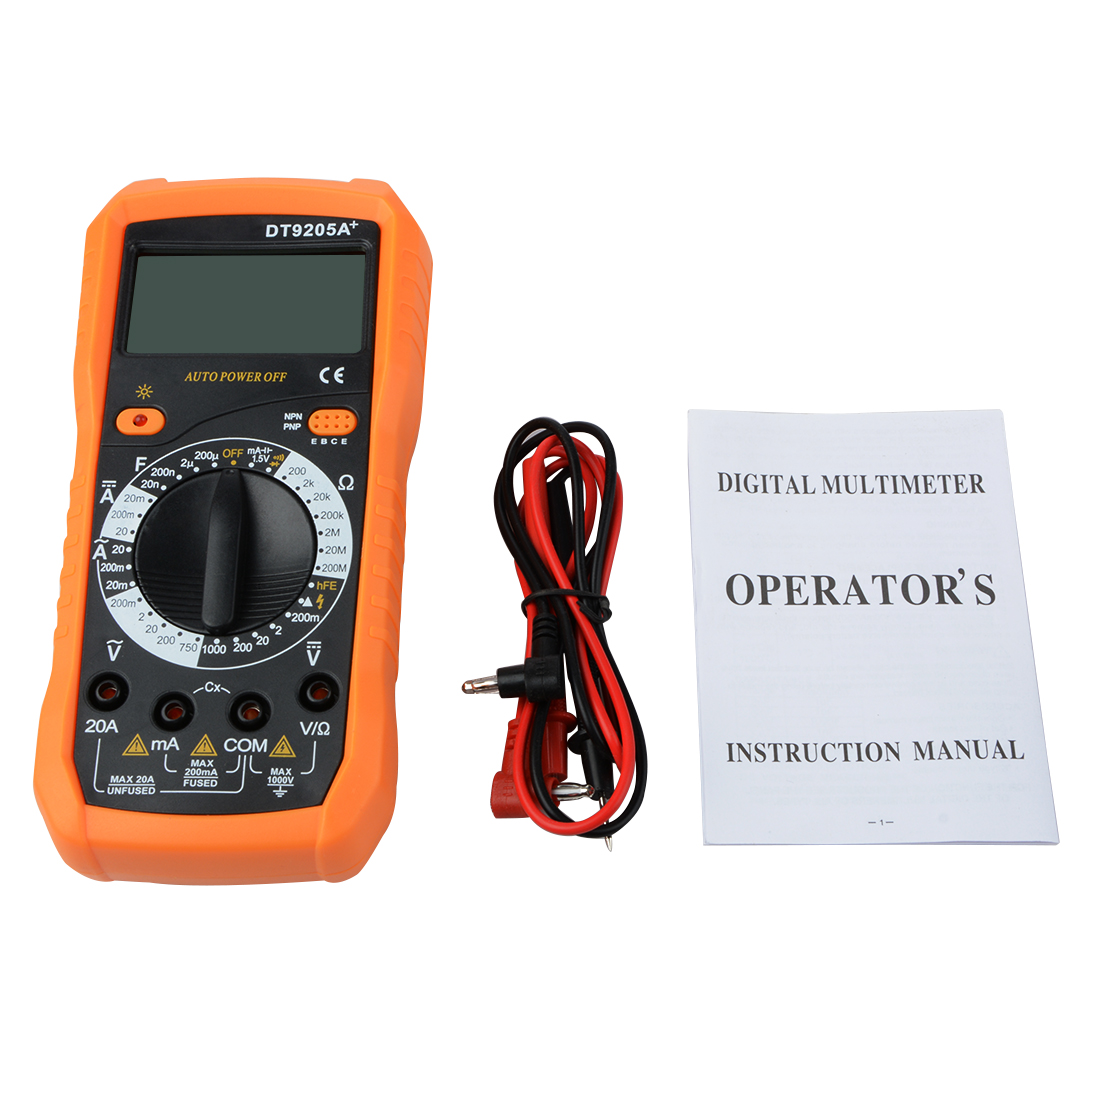 Multimeter DT9205A AC LCD Display Professional Electric Handheld Tester Meter Digital Multimeter Multimetro Ammeter Multitester цены